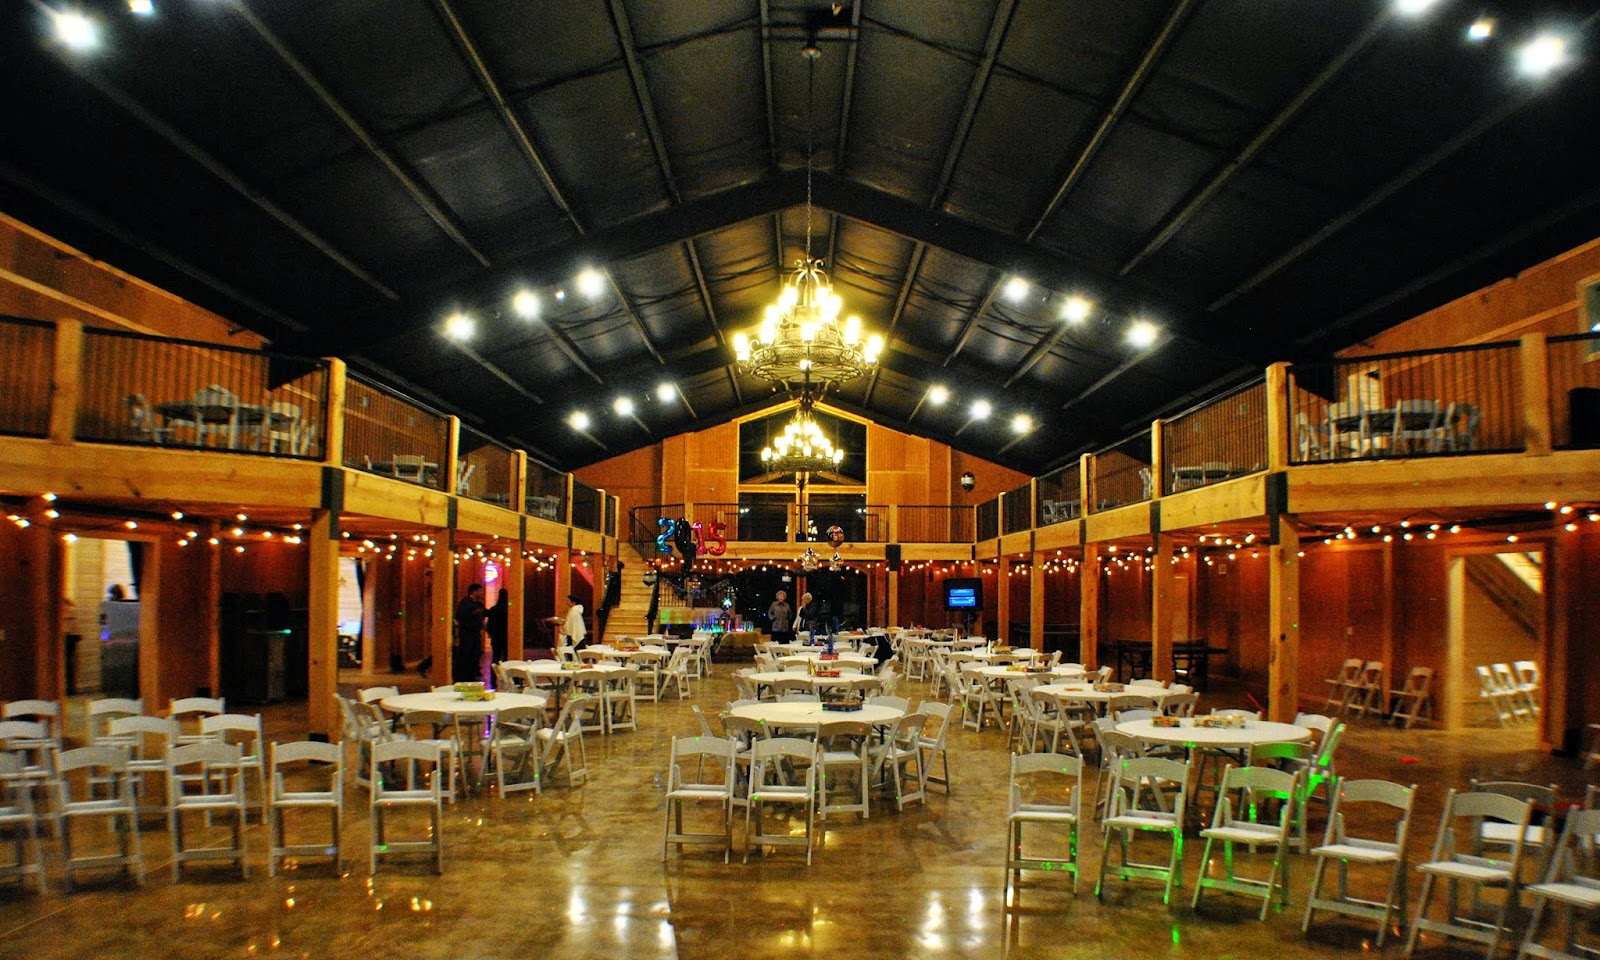 With Class LLC Wedding Coordinators, Wedding Planners, Wedding DJs, Party DJs, Chattanooga DJs, Cleveland DJs, Dalton DJs – Howe Farms – Weddings and Events Venue – Georgetown, TN